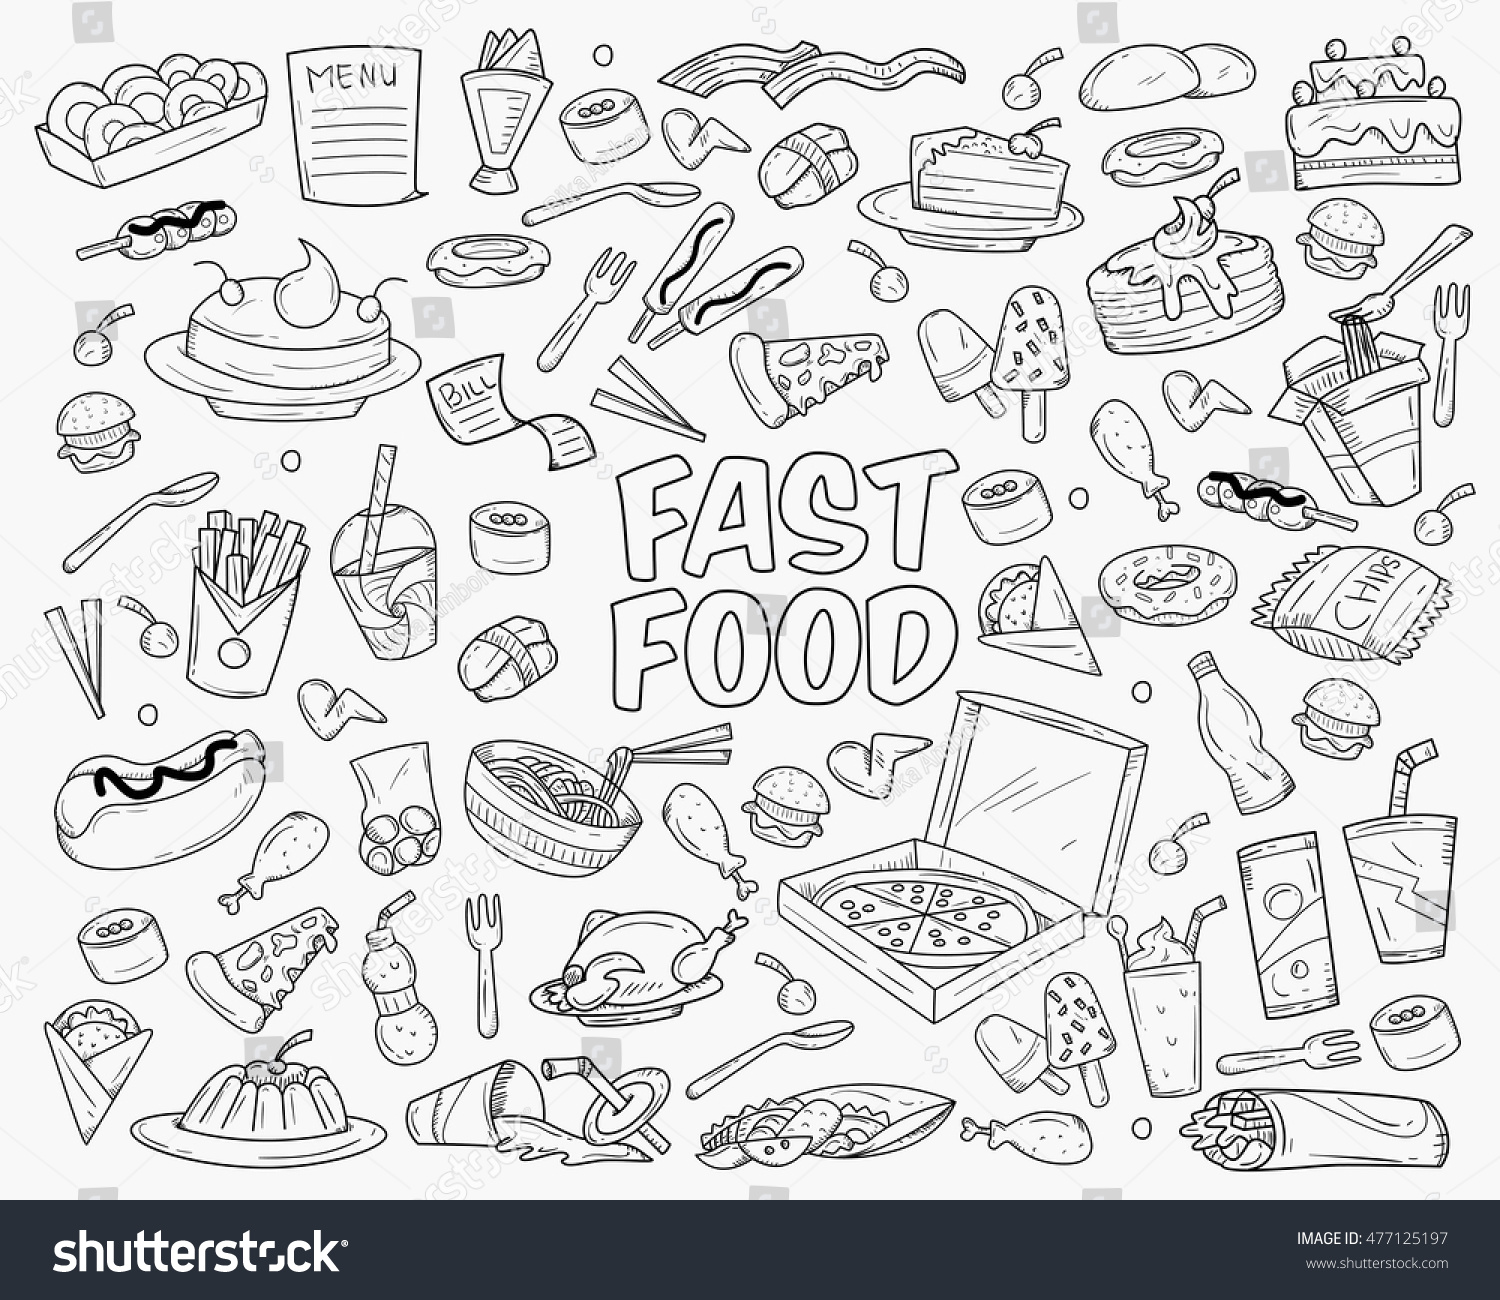 Fast Food Doodles Hand Drawn Objects Stock Vector 477125197 - Shutterstock